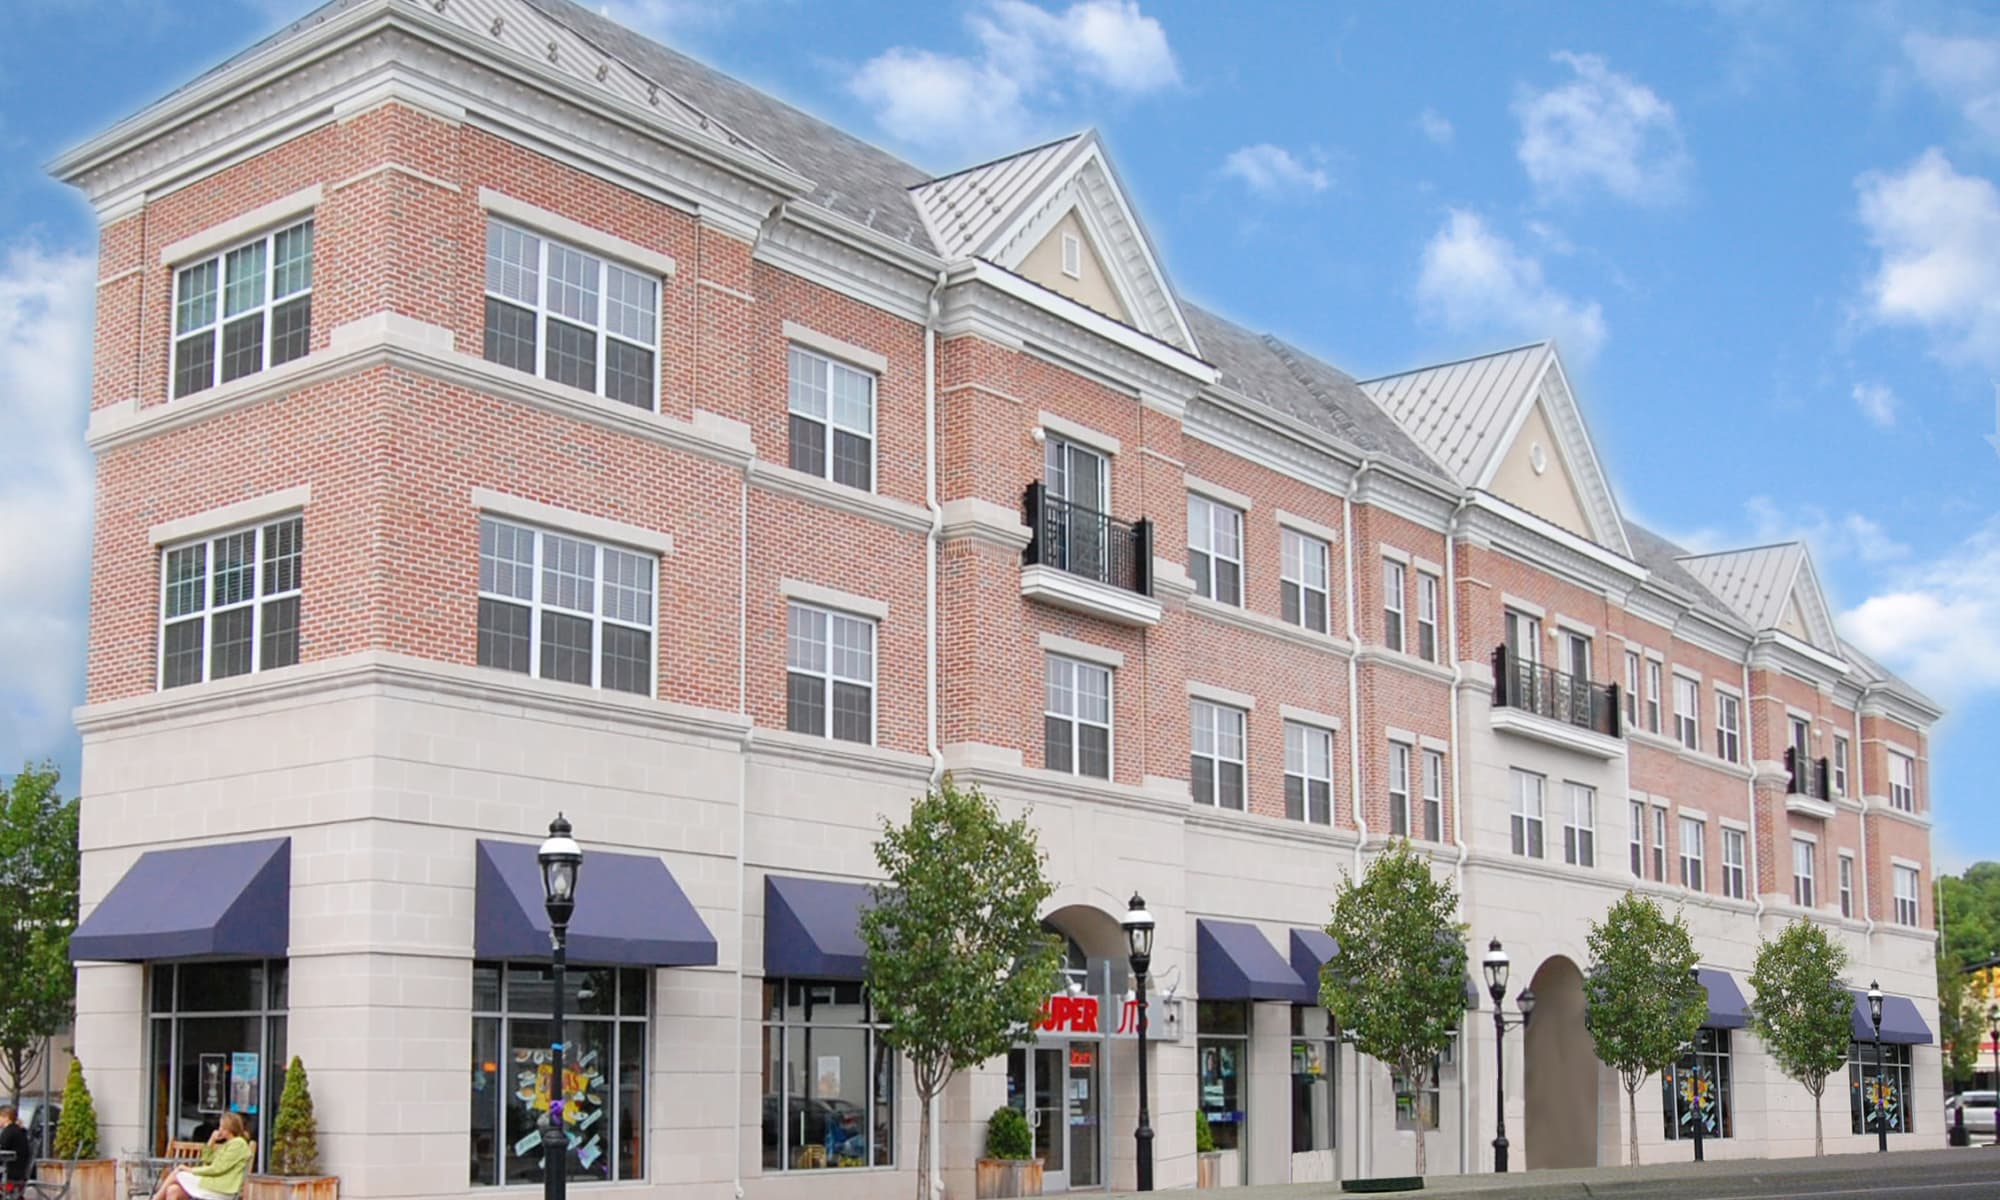 Pet Friendly Apartments In Westfield Nj - Best Apartment In The ...